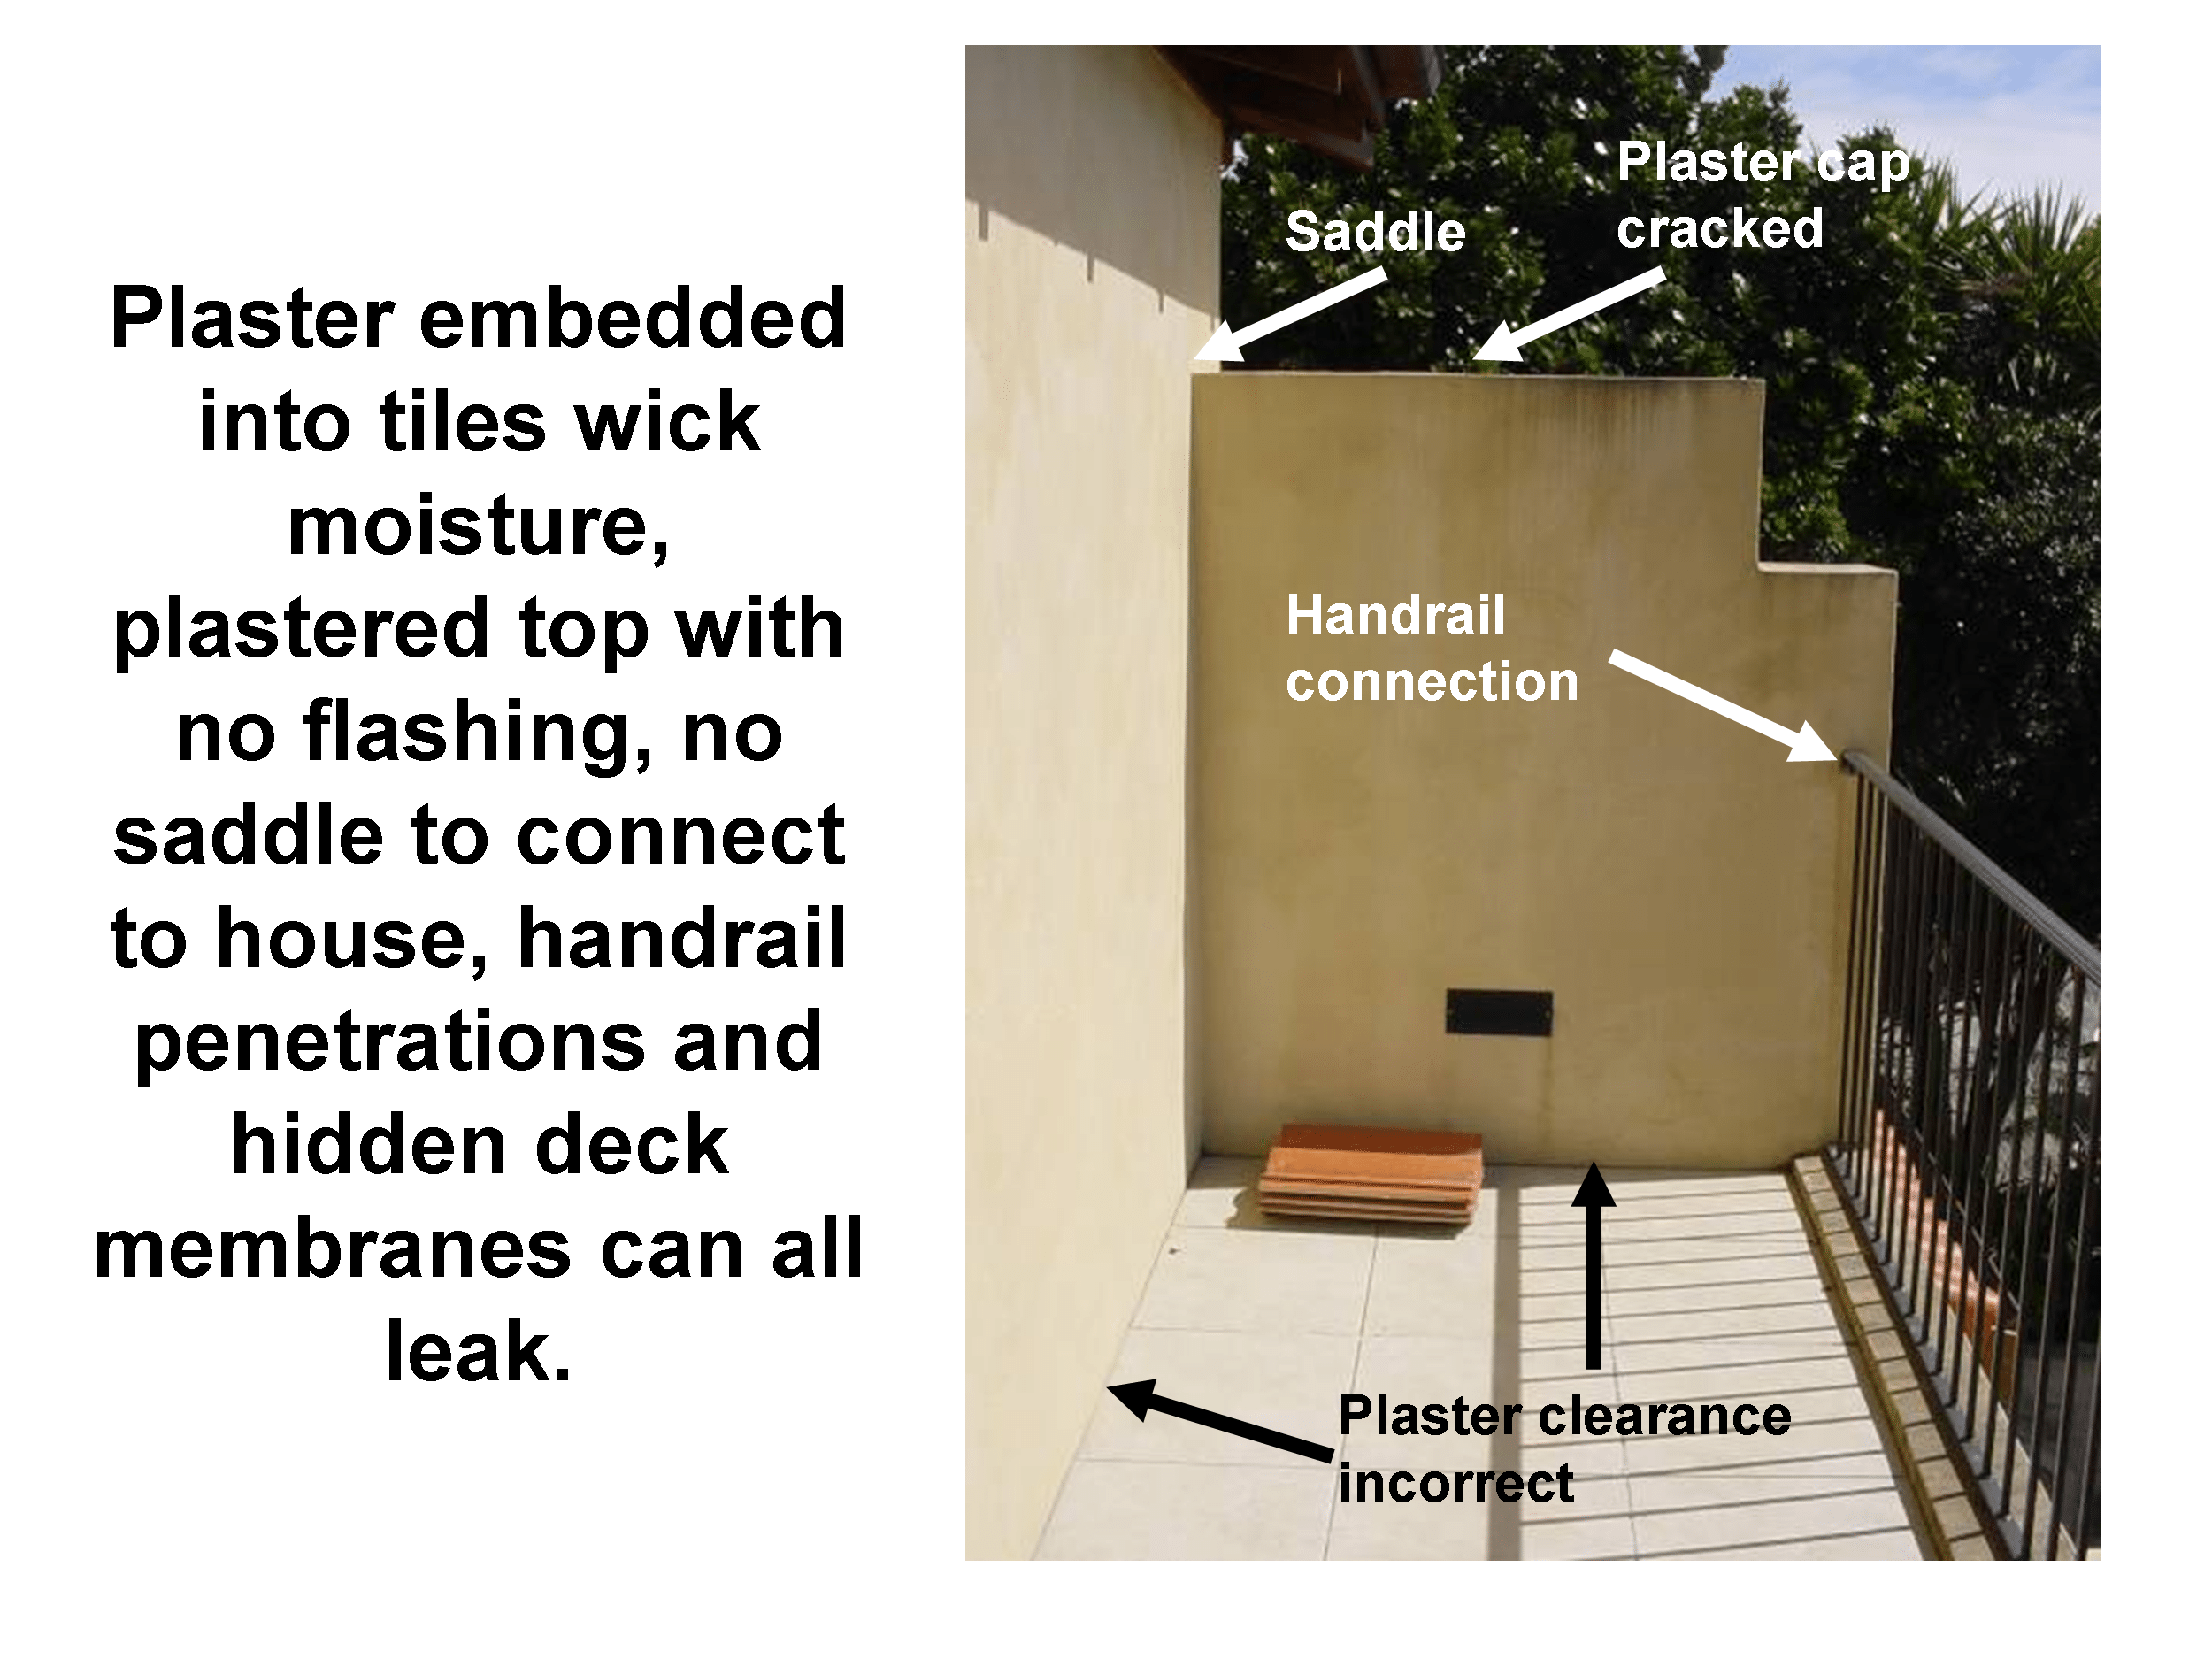 Plaster home leaky building defects - multiple defects associated with leaking decks